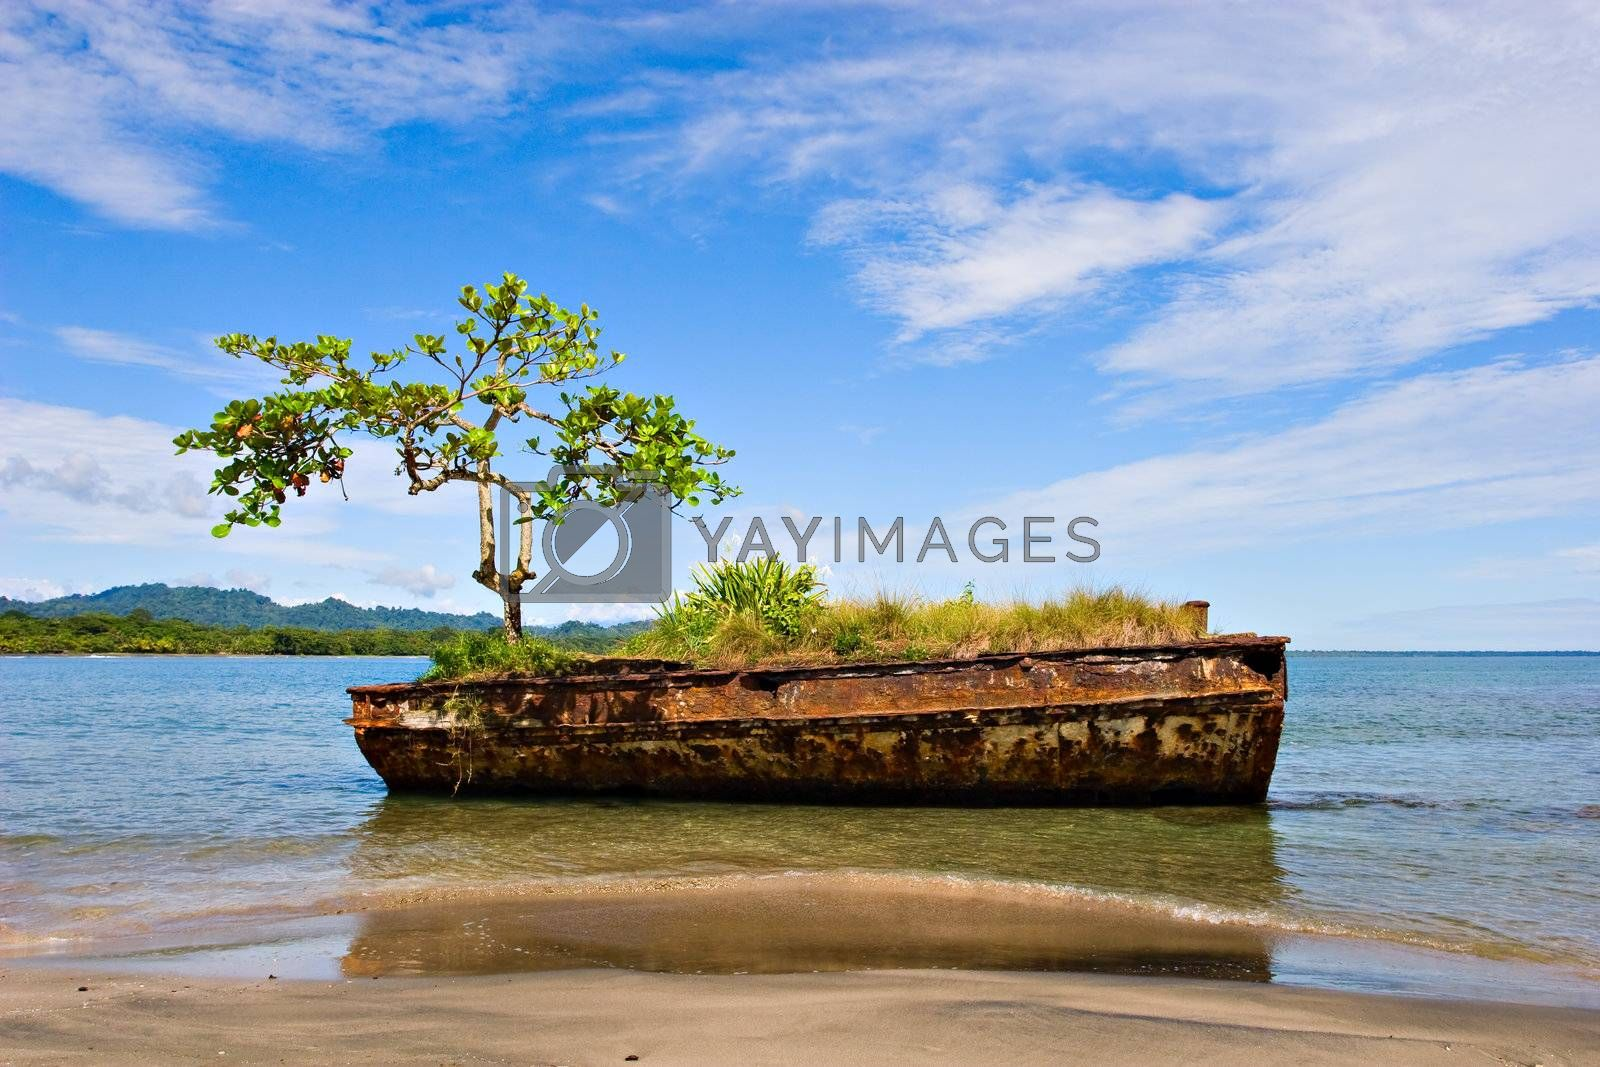 An old rusty vessel with a tree on a beach. Puerto Viejo, Costa Rica.